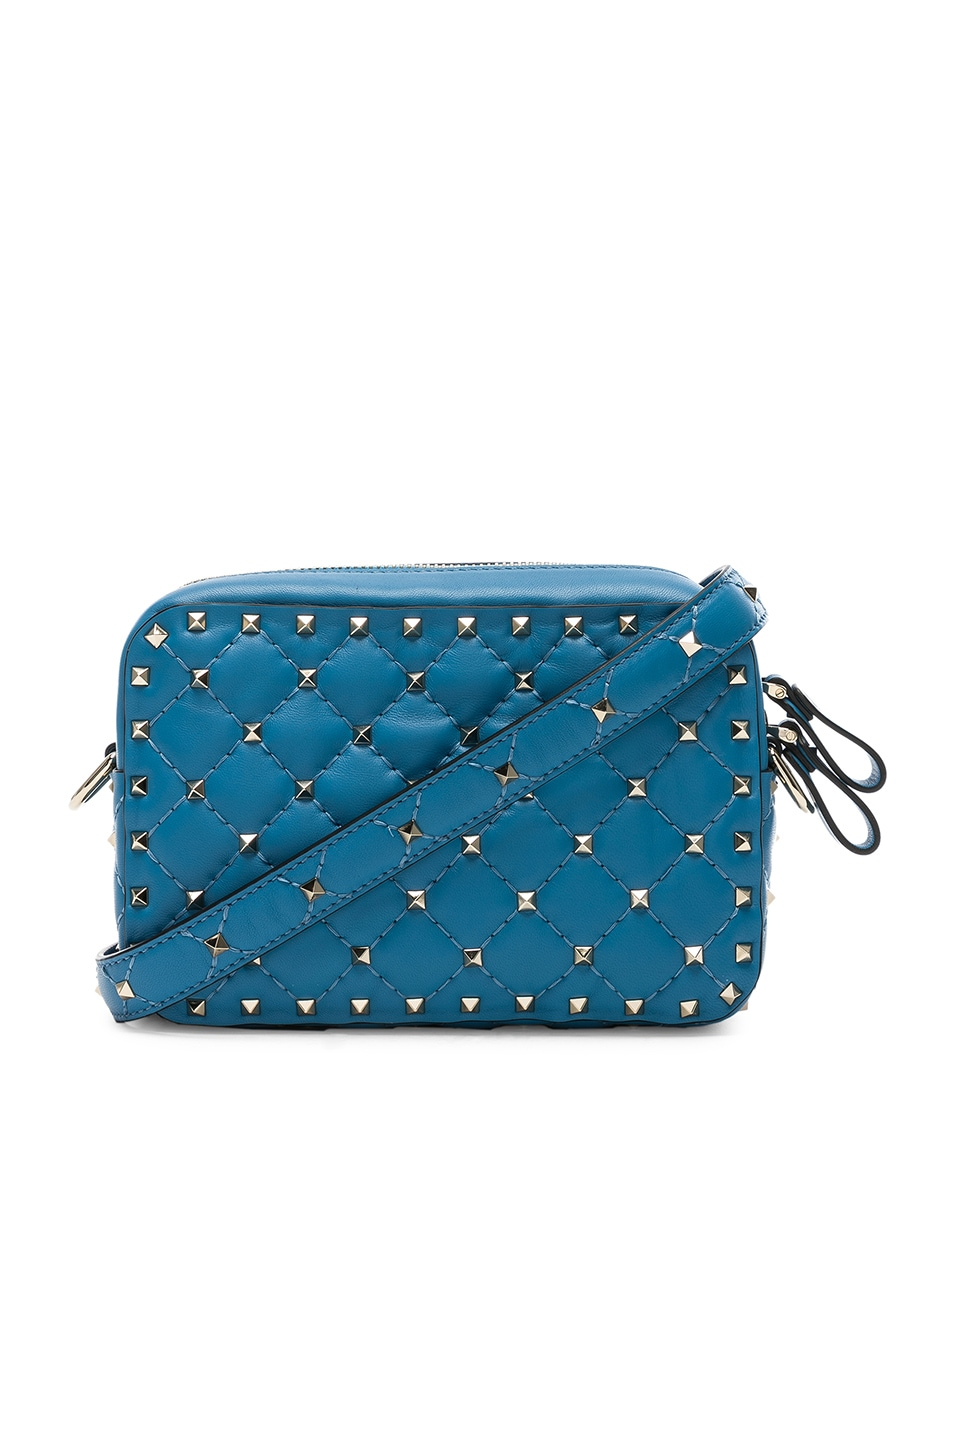 Image 1 of Valentino Rockstud Spike Crossbody Bag in Sky Blue